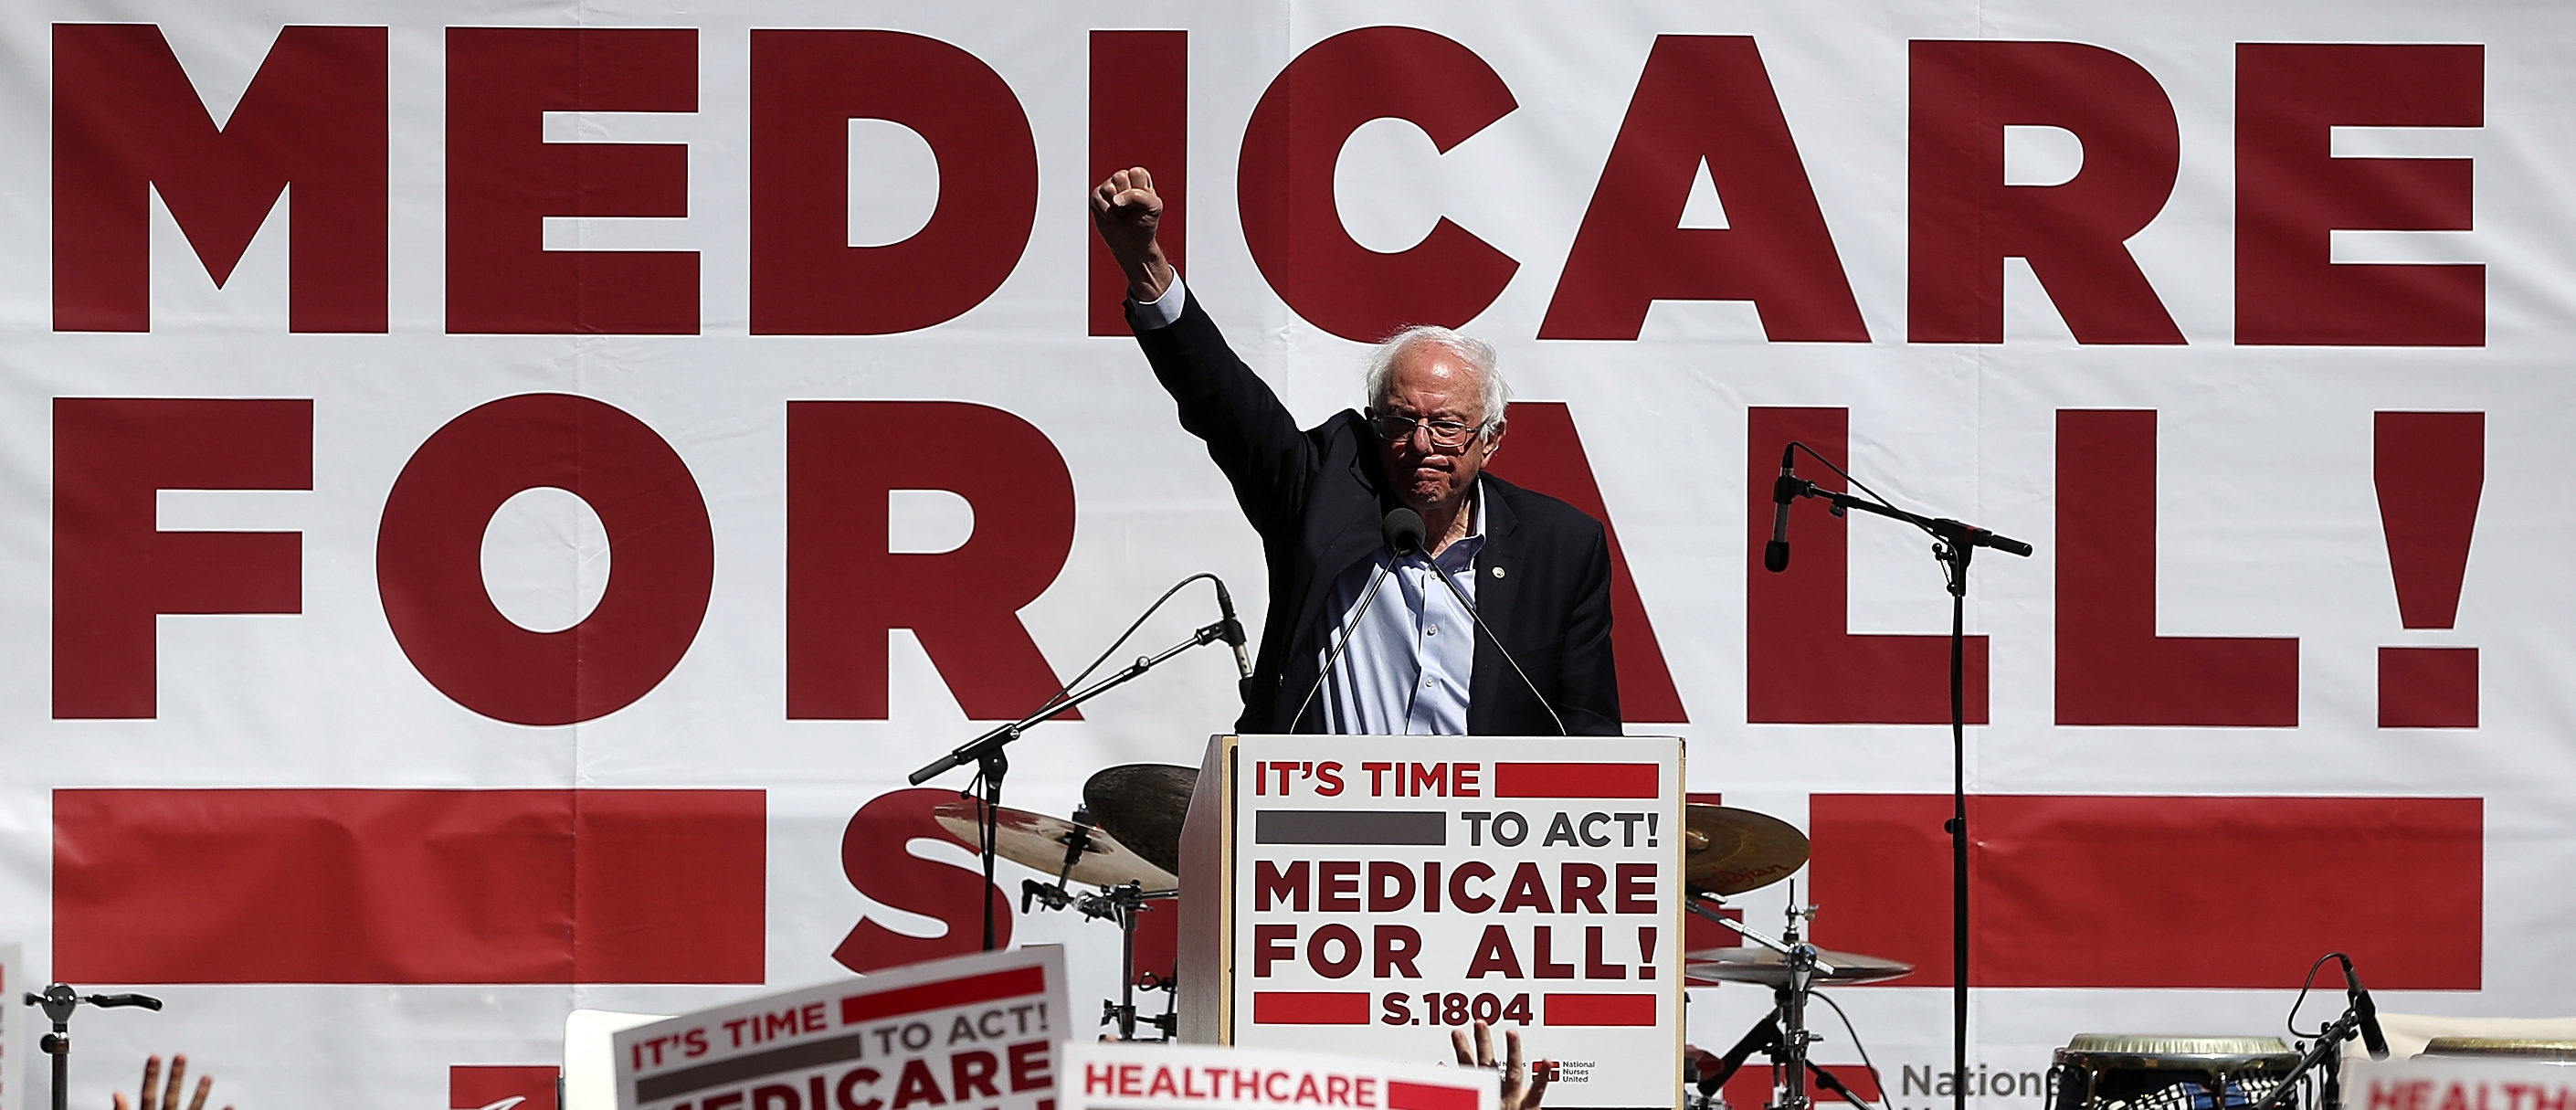 U.S. Sen. Bernie Sanders (I-VT) speaks during a health care rally at the 2017 Convention of the California Nurses Association/National Nurses Organizing Committee on September 22, 2017 in San Francisco, California. (Photo by Justin Sullivan/Getty Images)